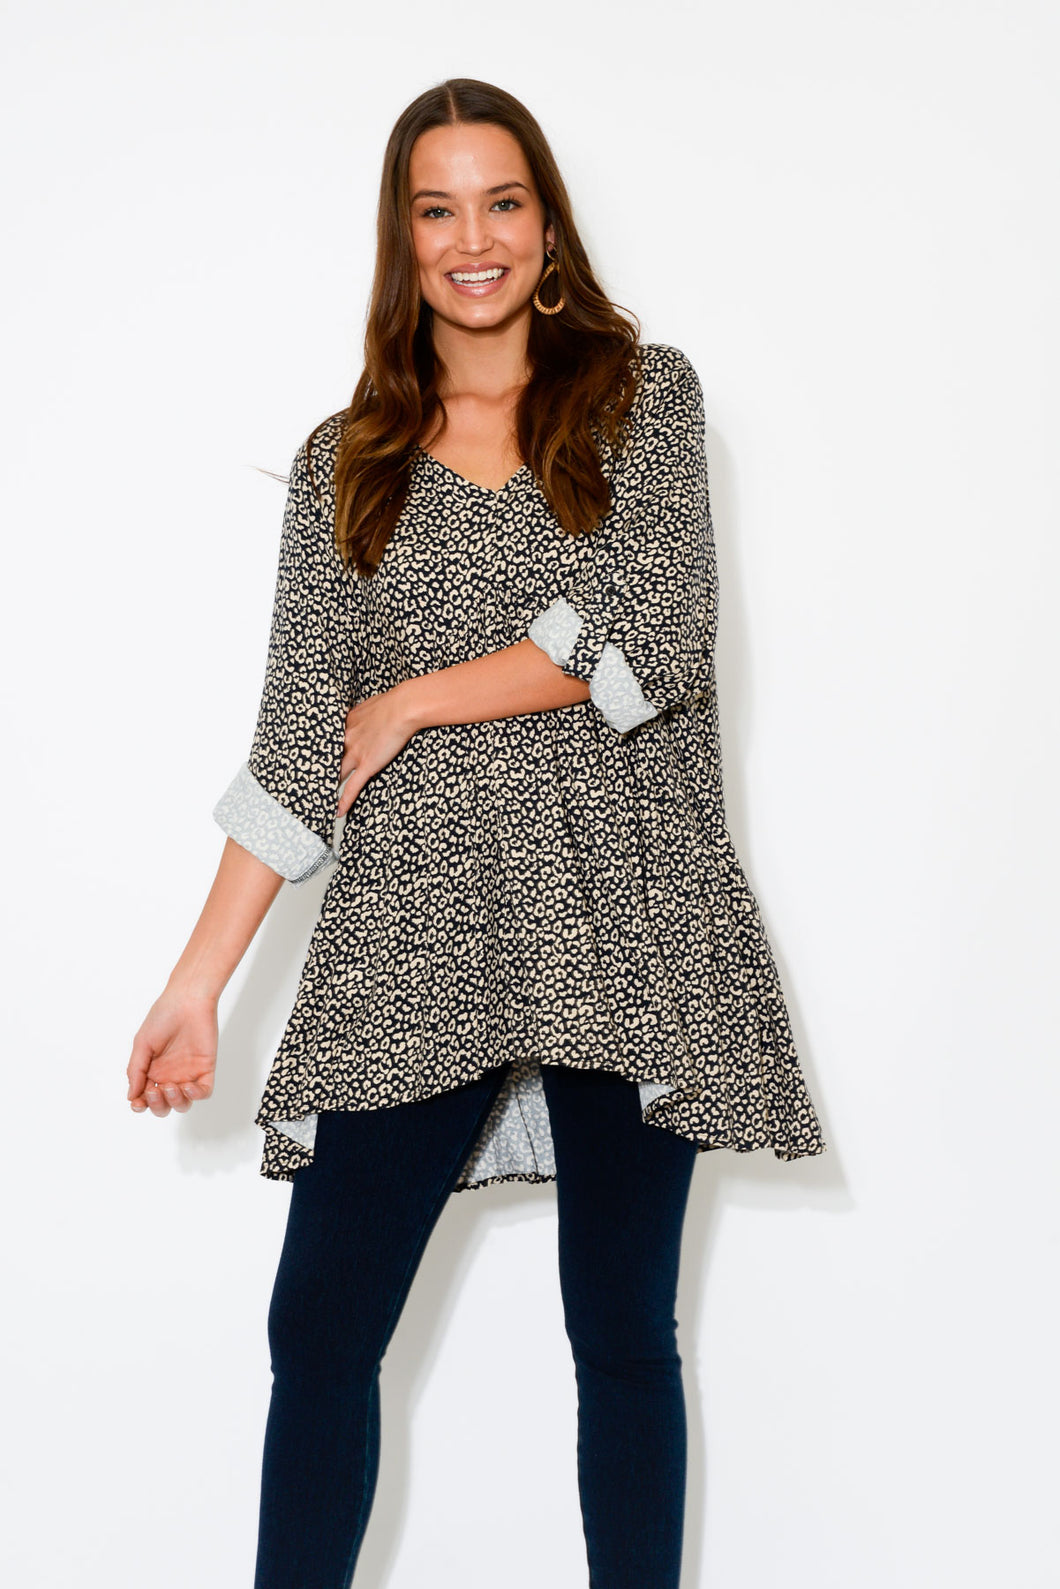 Cheetah Sleeved Peak Top - Blue Bungalow